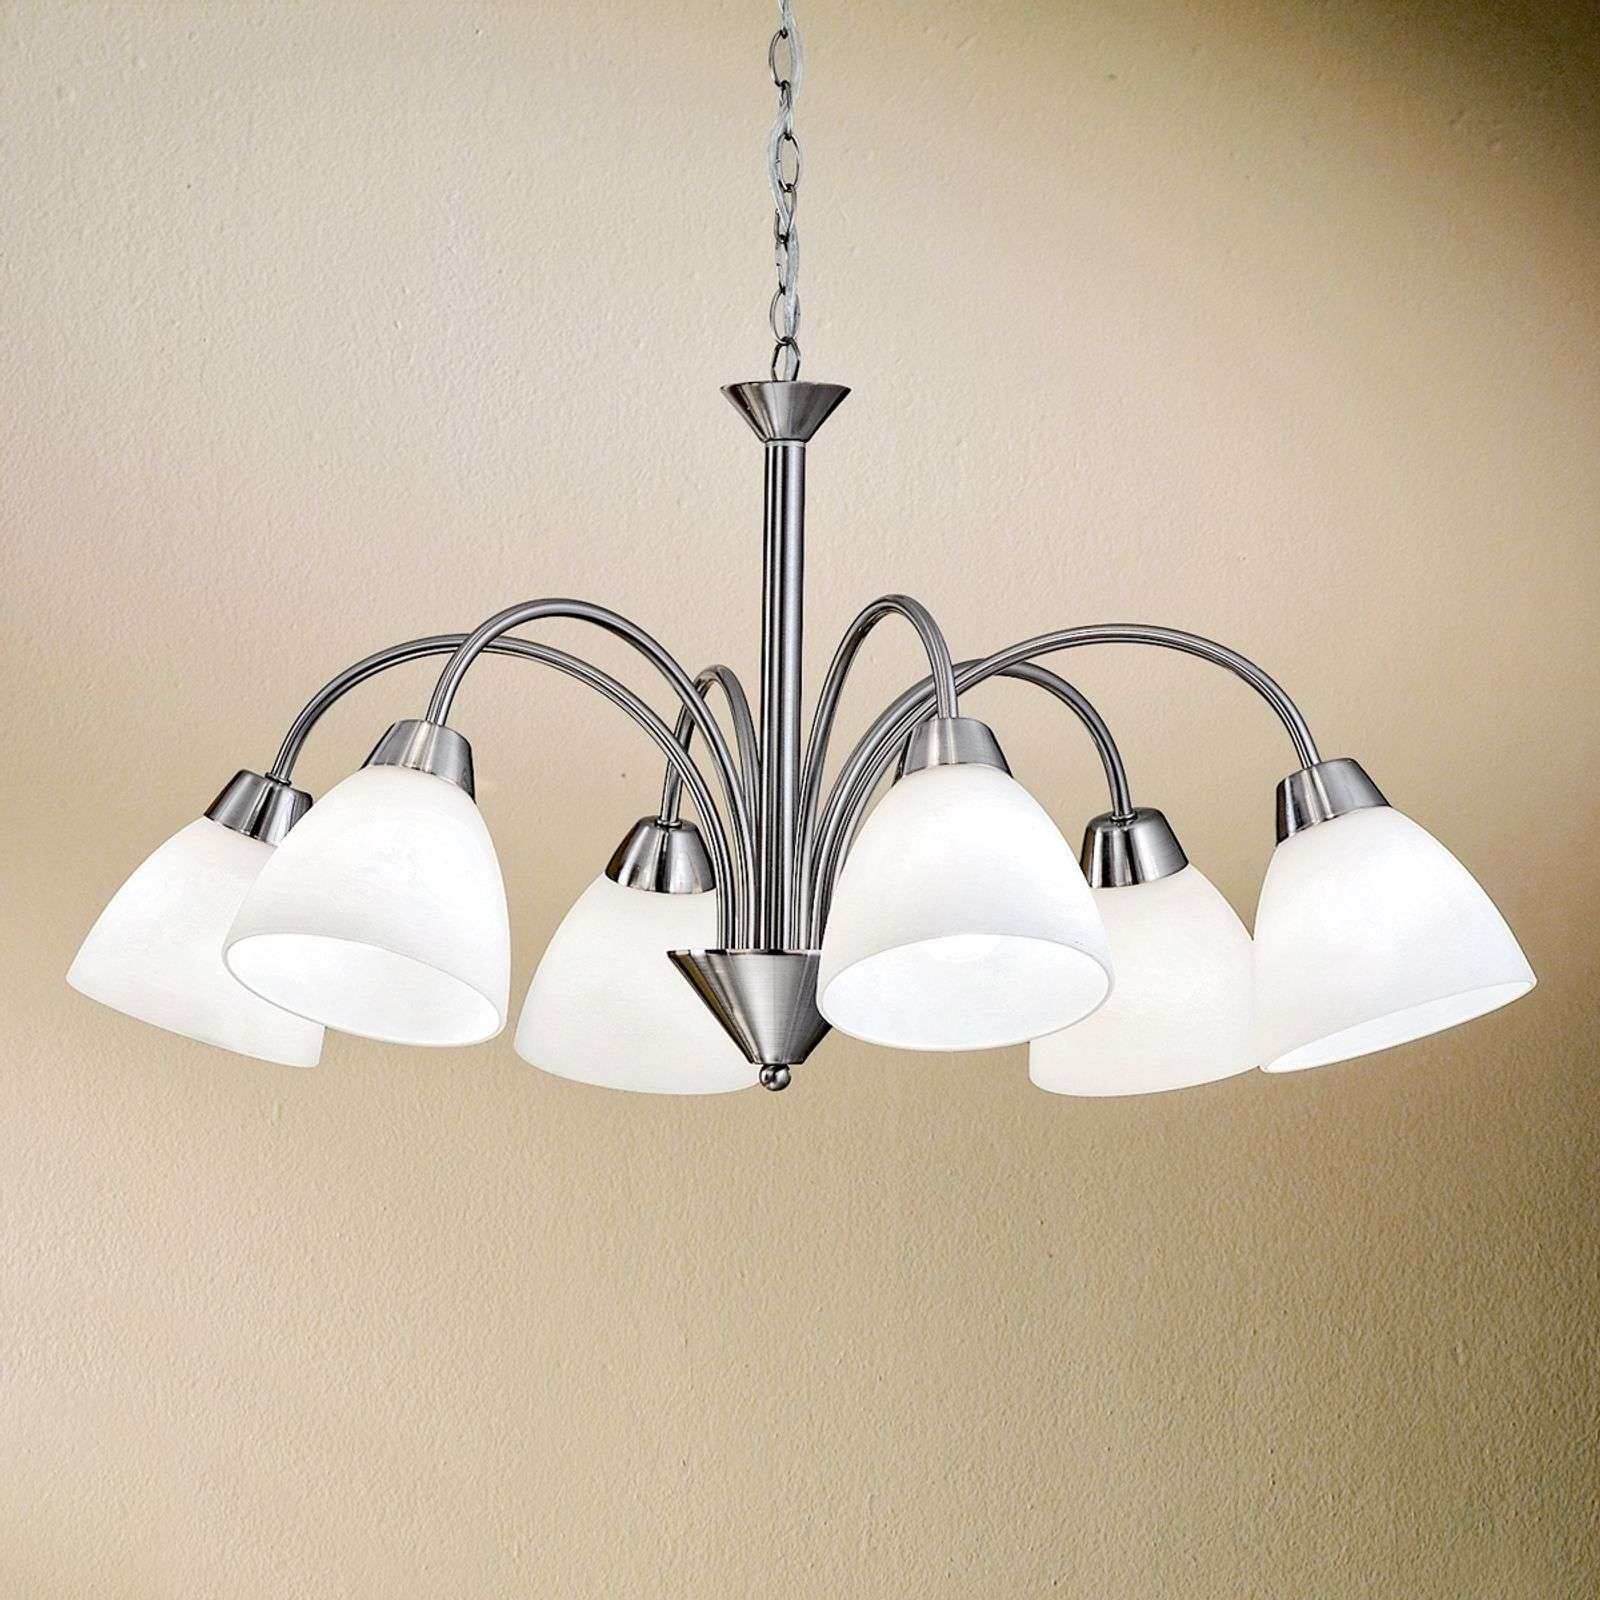 Charmante suspension KINGA à 6 lampes, nickel